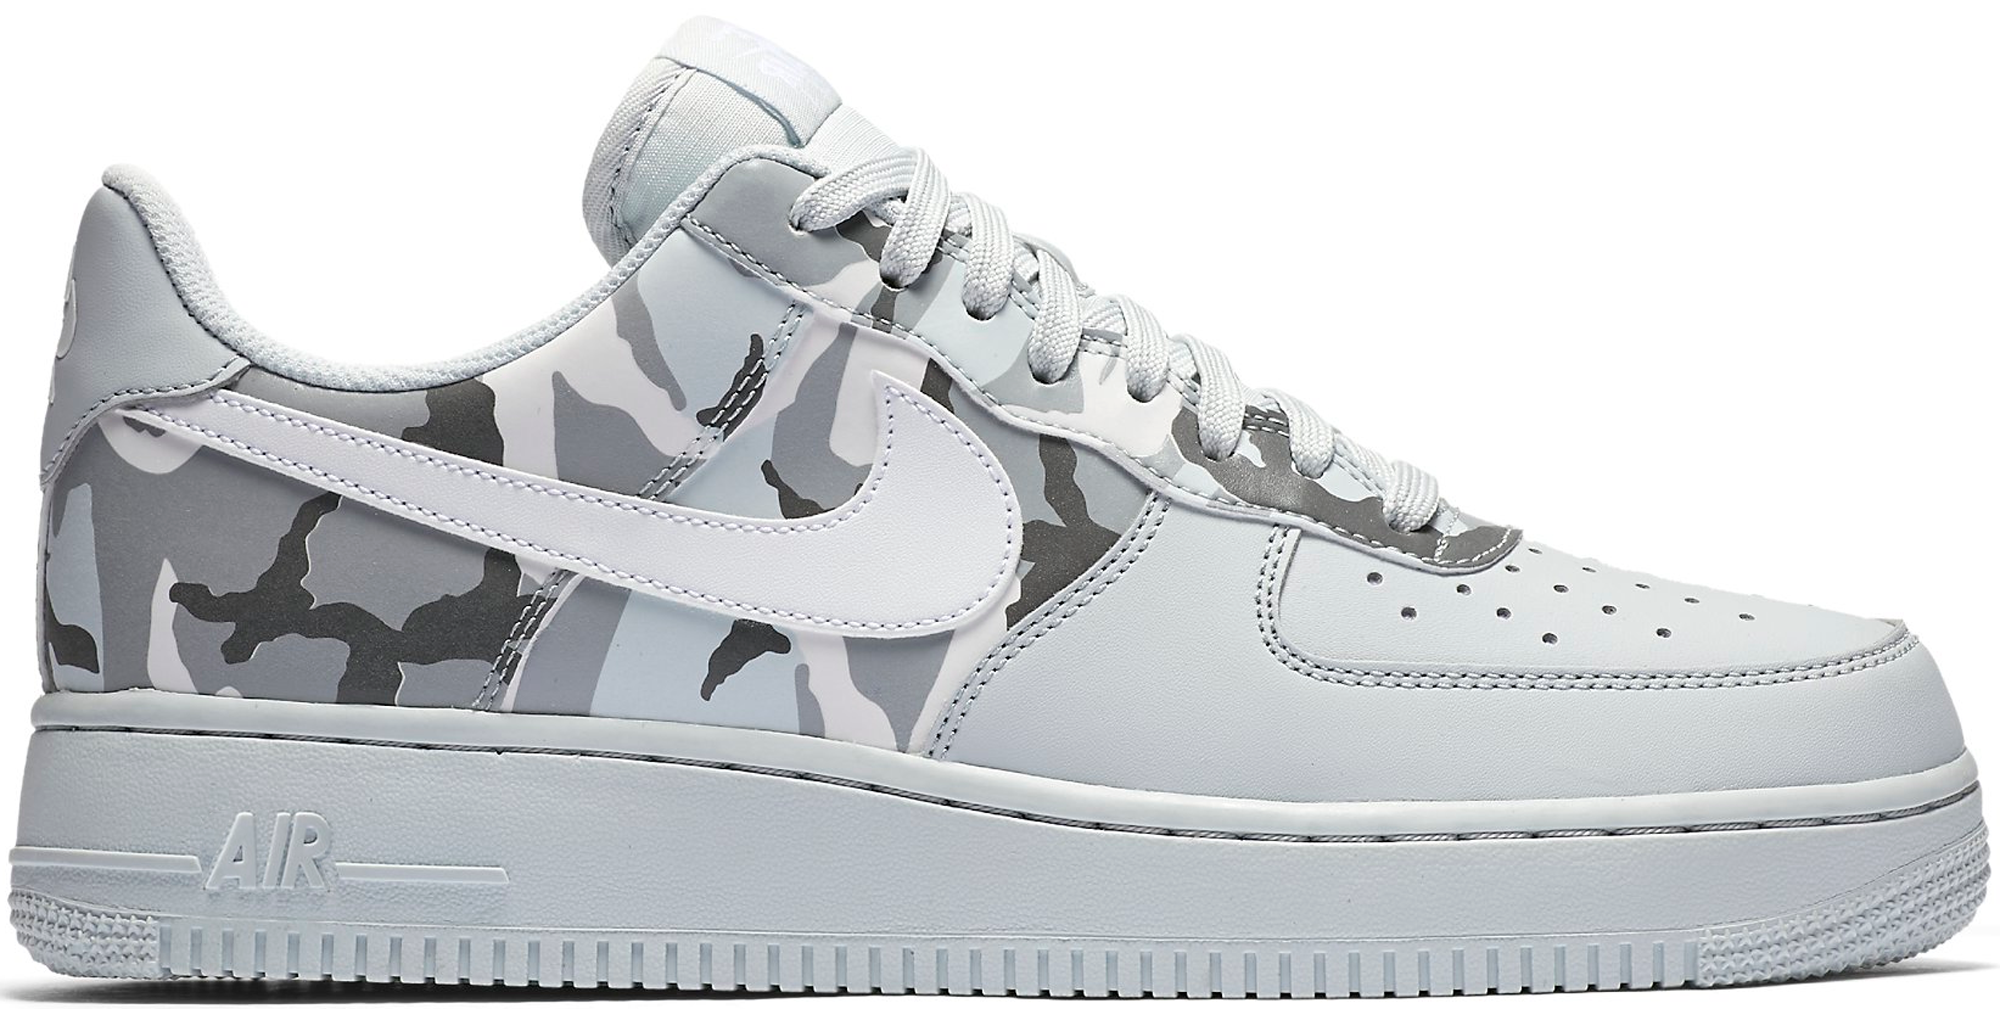 Nike Air Force 1 Low Arctic Green | The Institute for